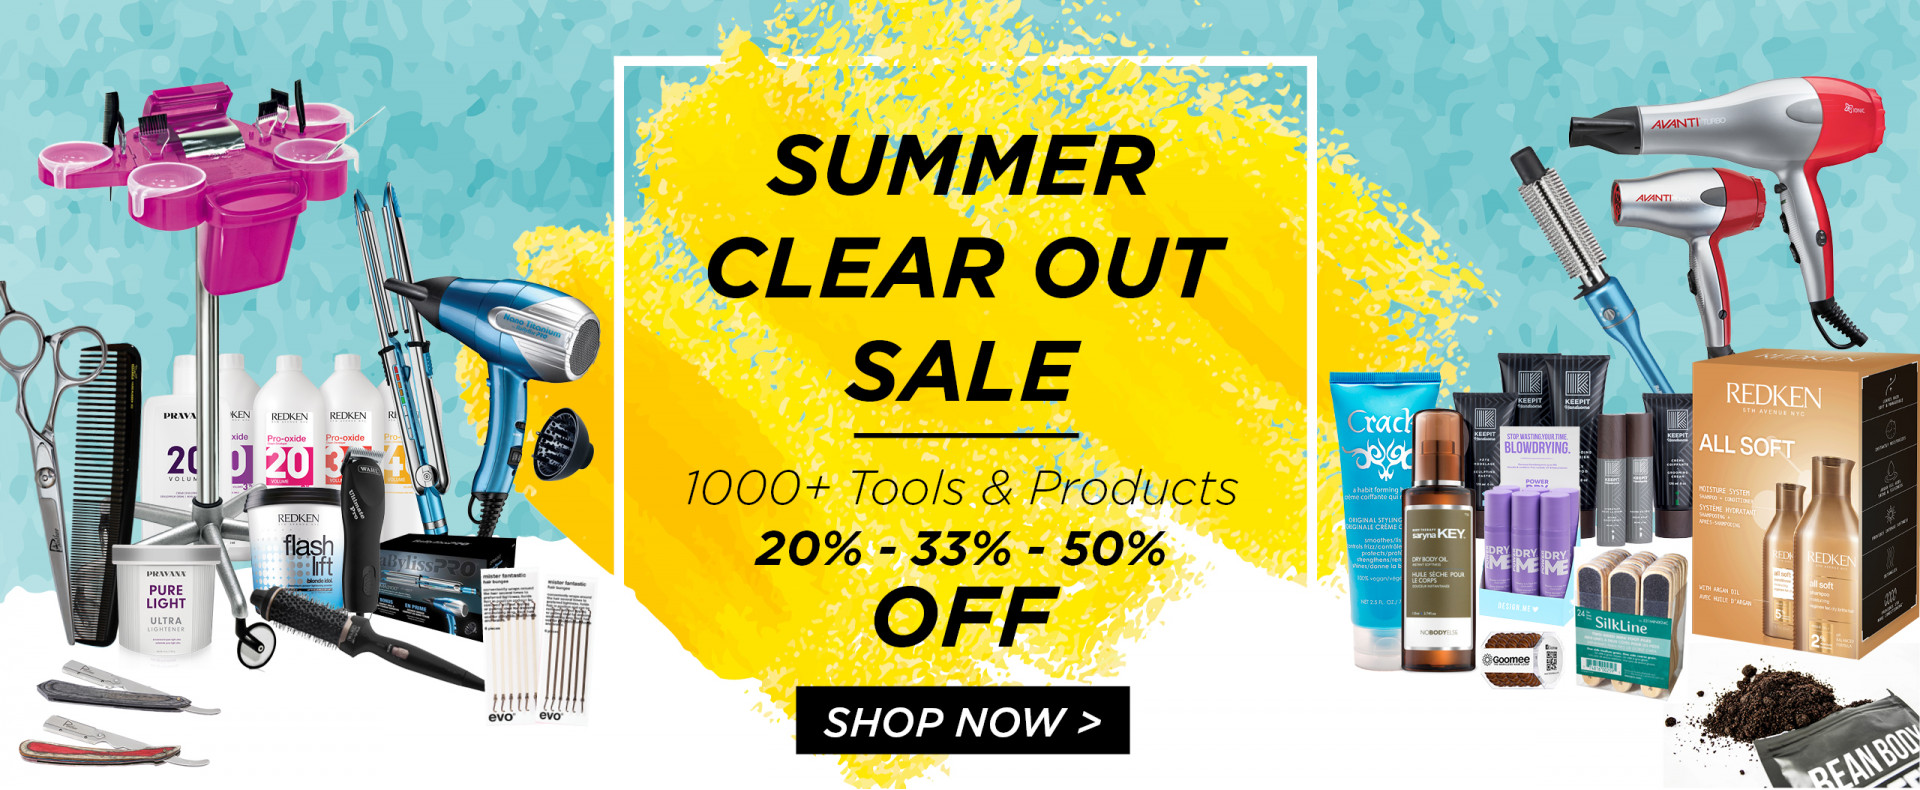 Summer Clear Out Sale!